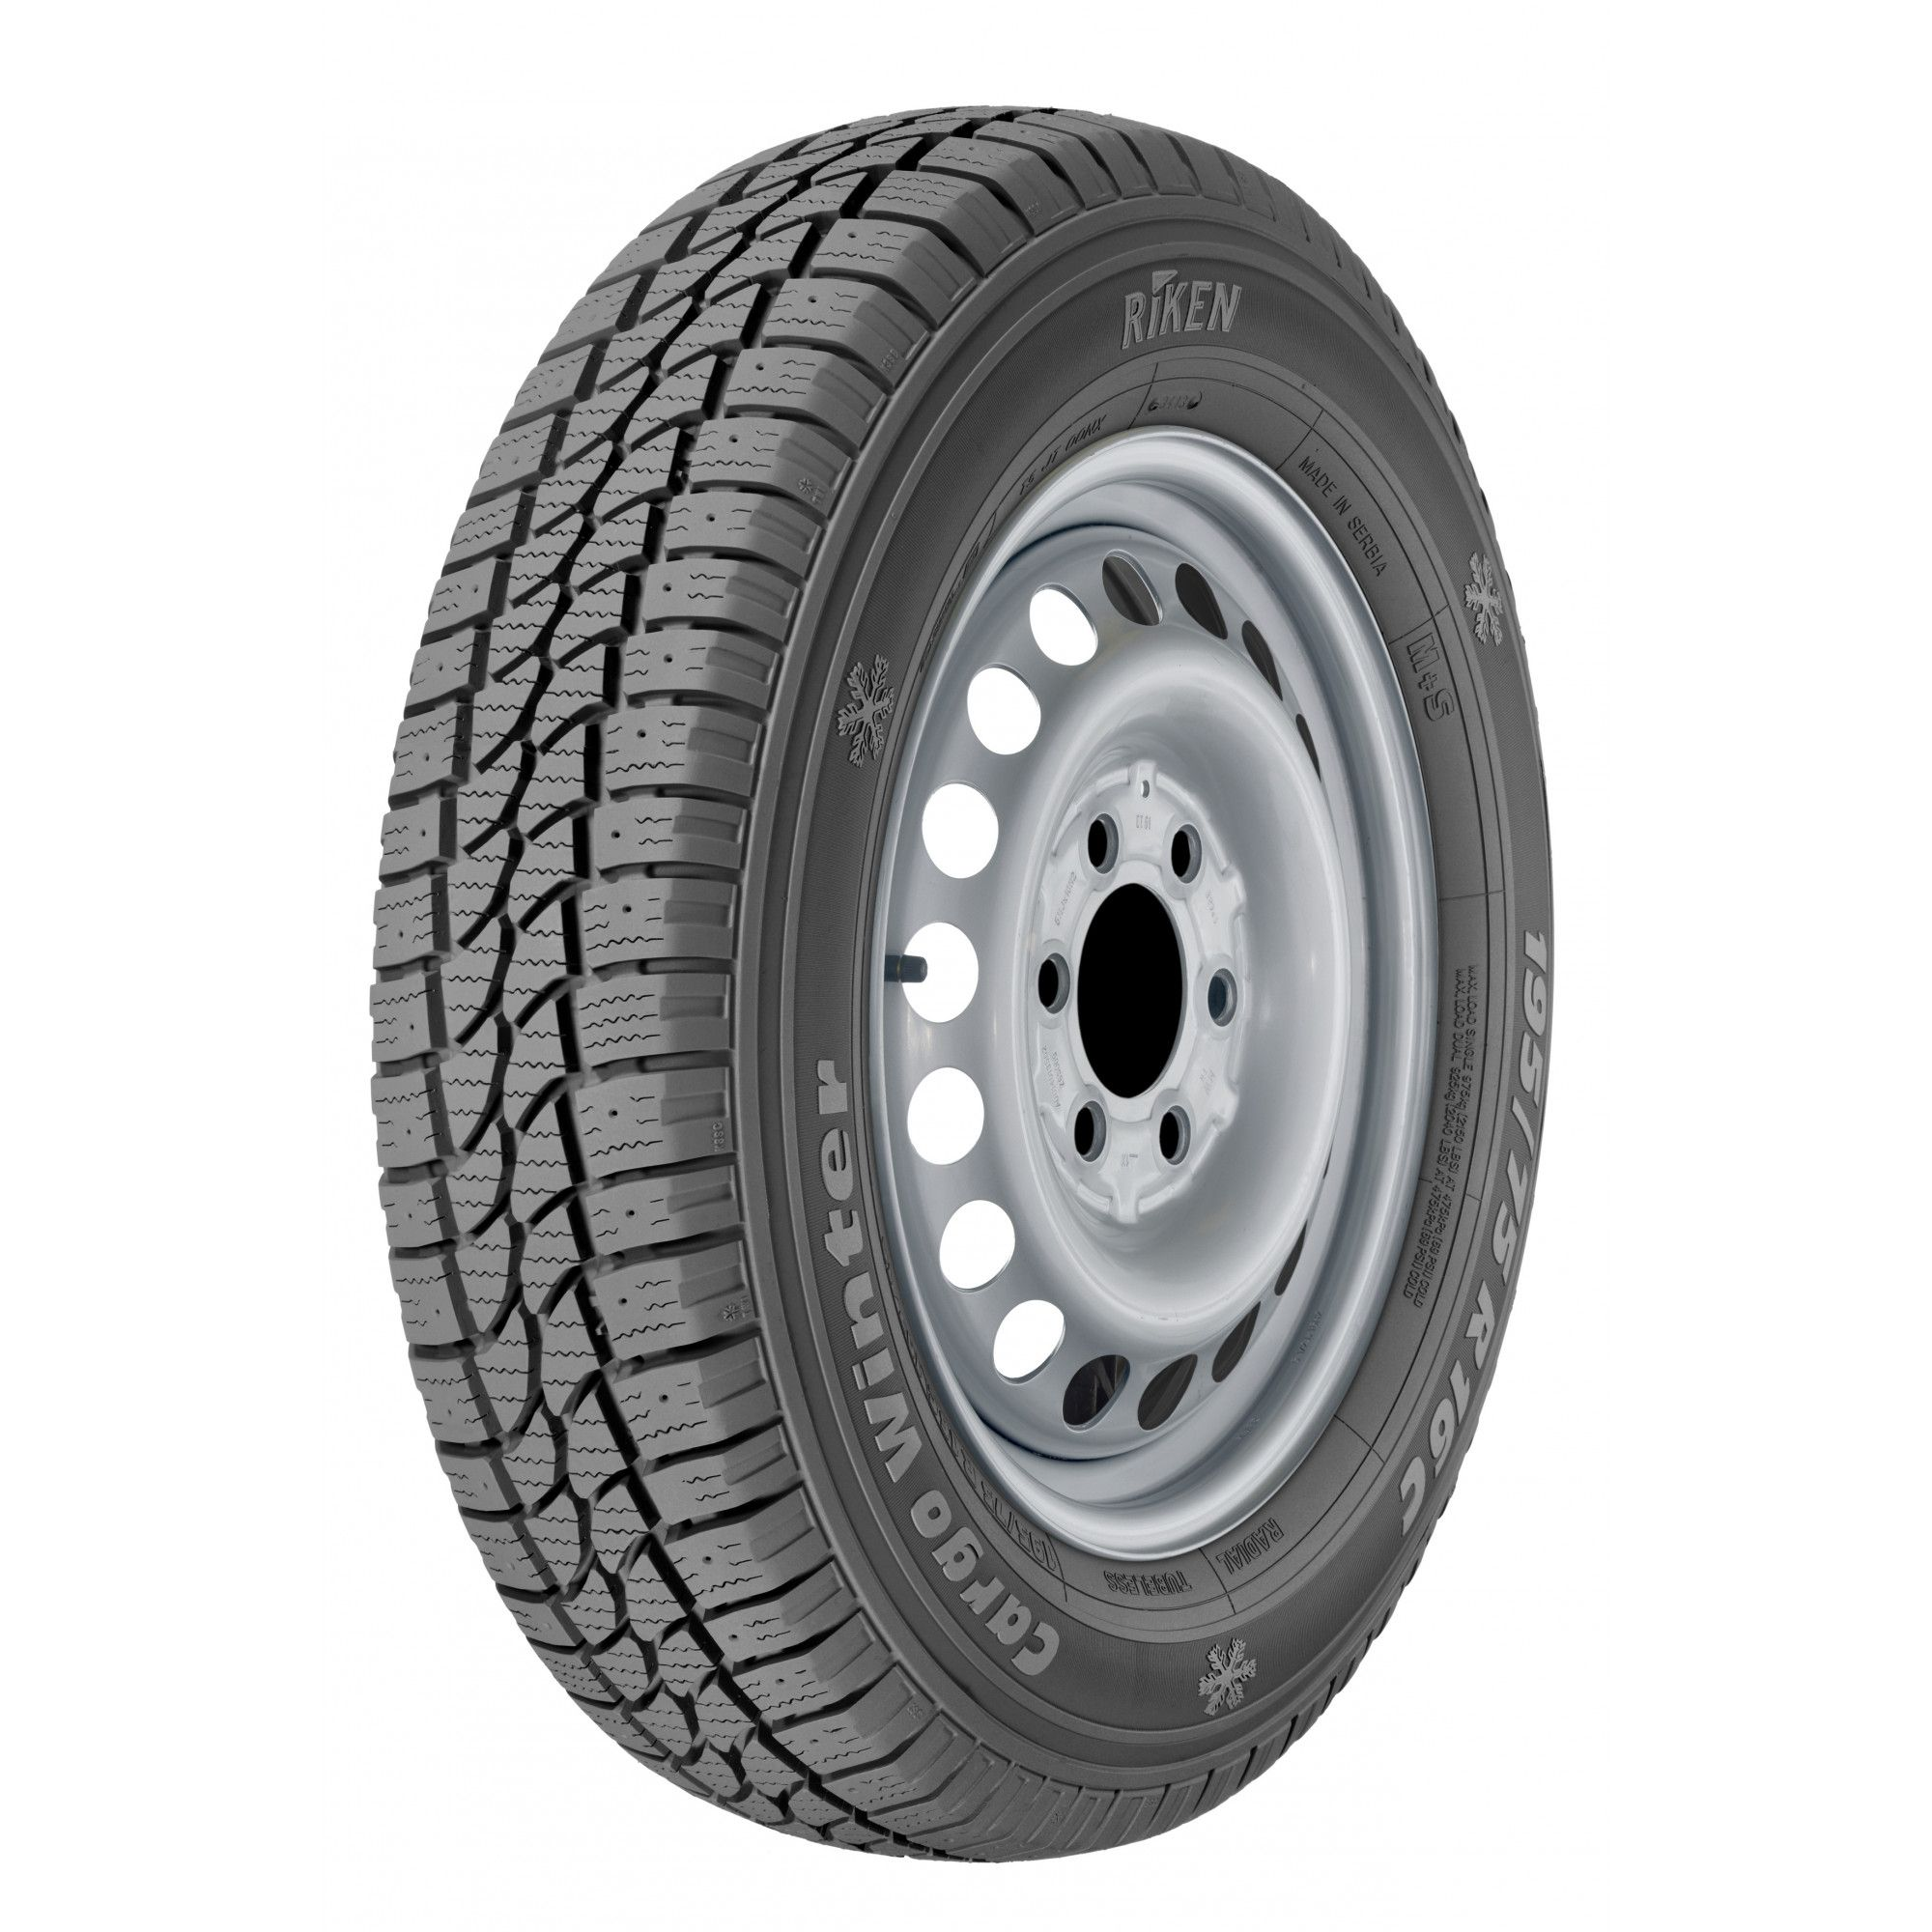 Anvelope Riken Cargo Winter 175/65R14c 90R Iarna imagine